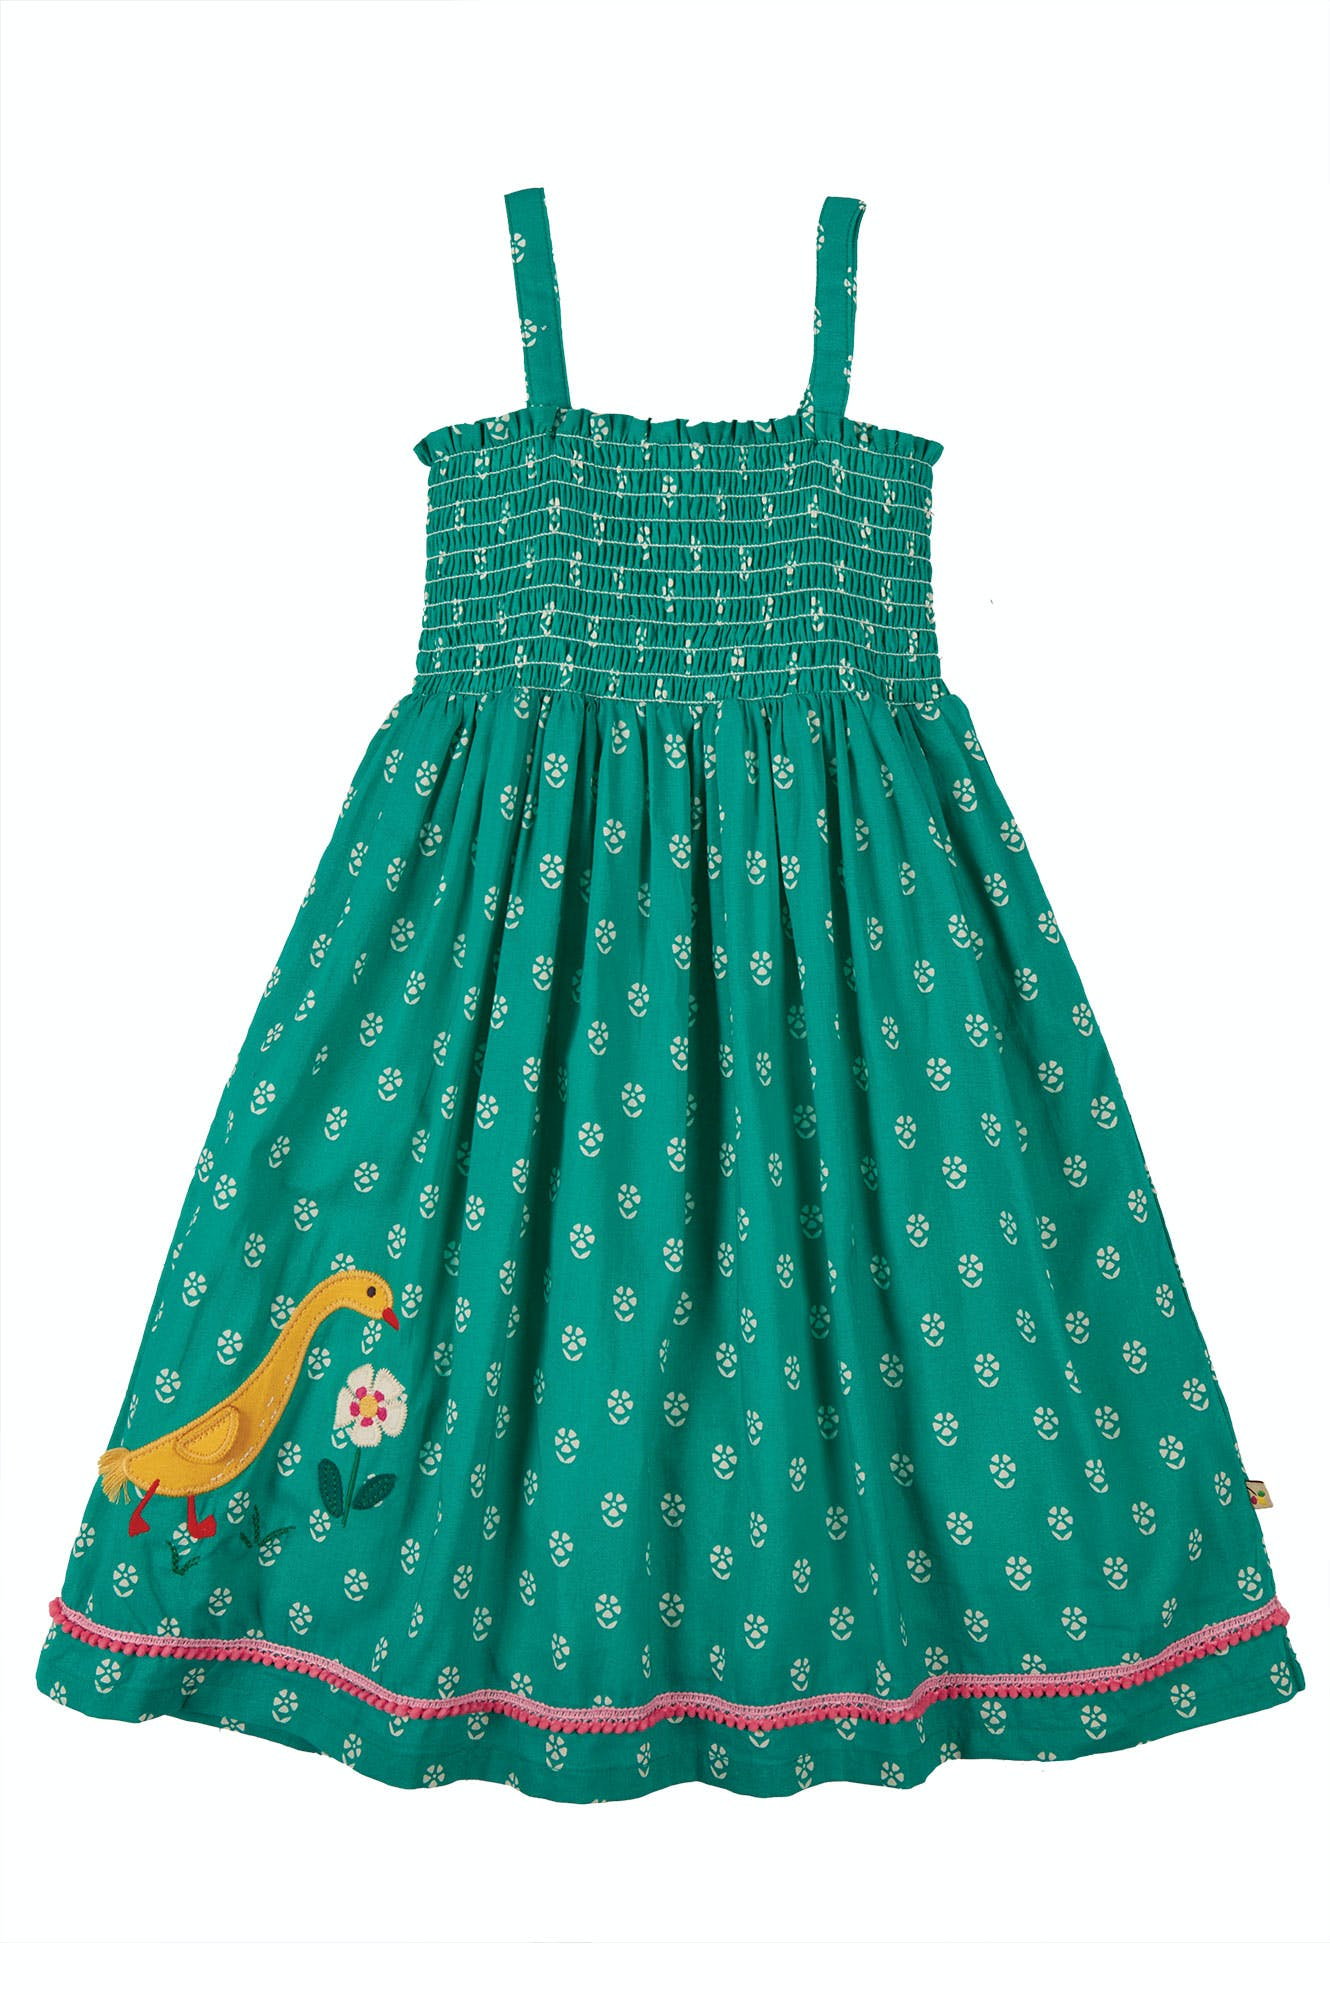 Click to view product details and reviews for Cora Skirt Dress.